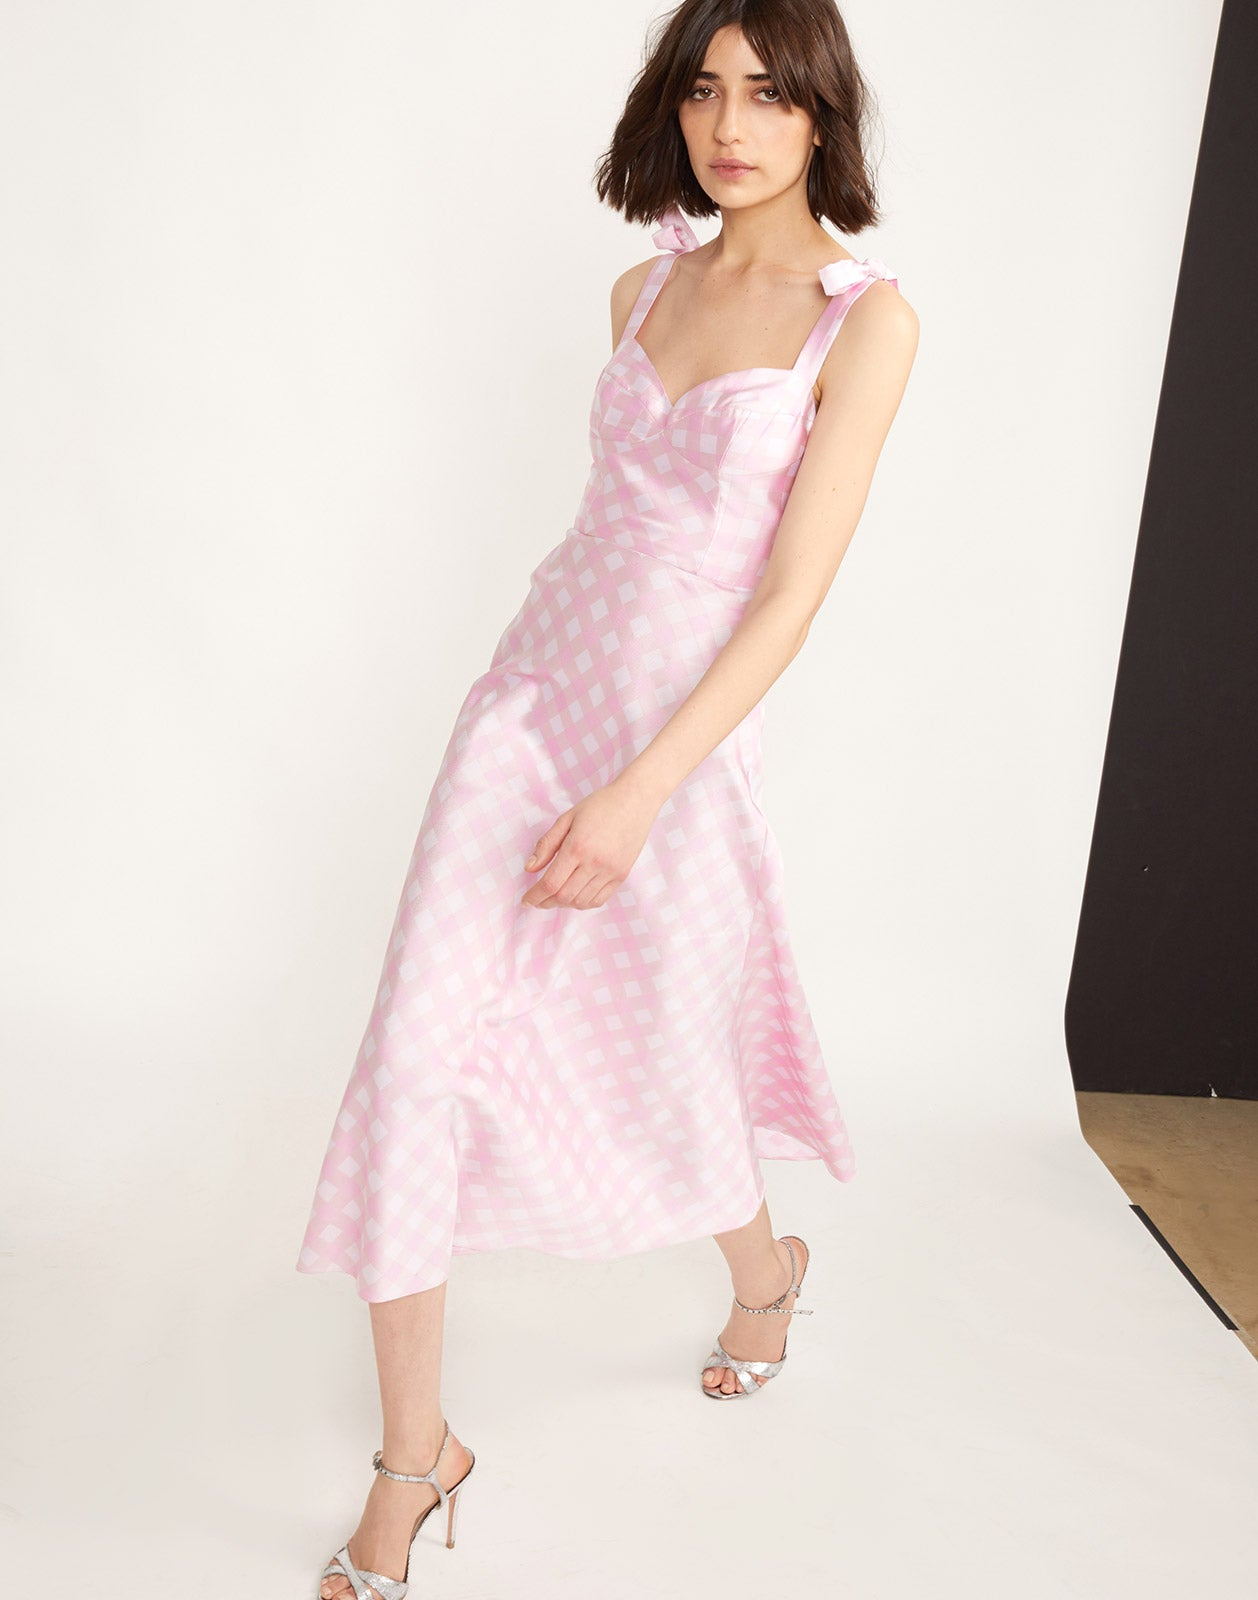 Additional view of the Easton Gingham Midi Dress